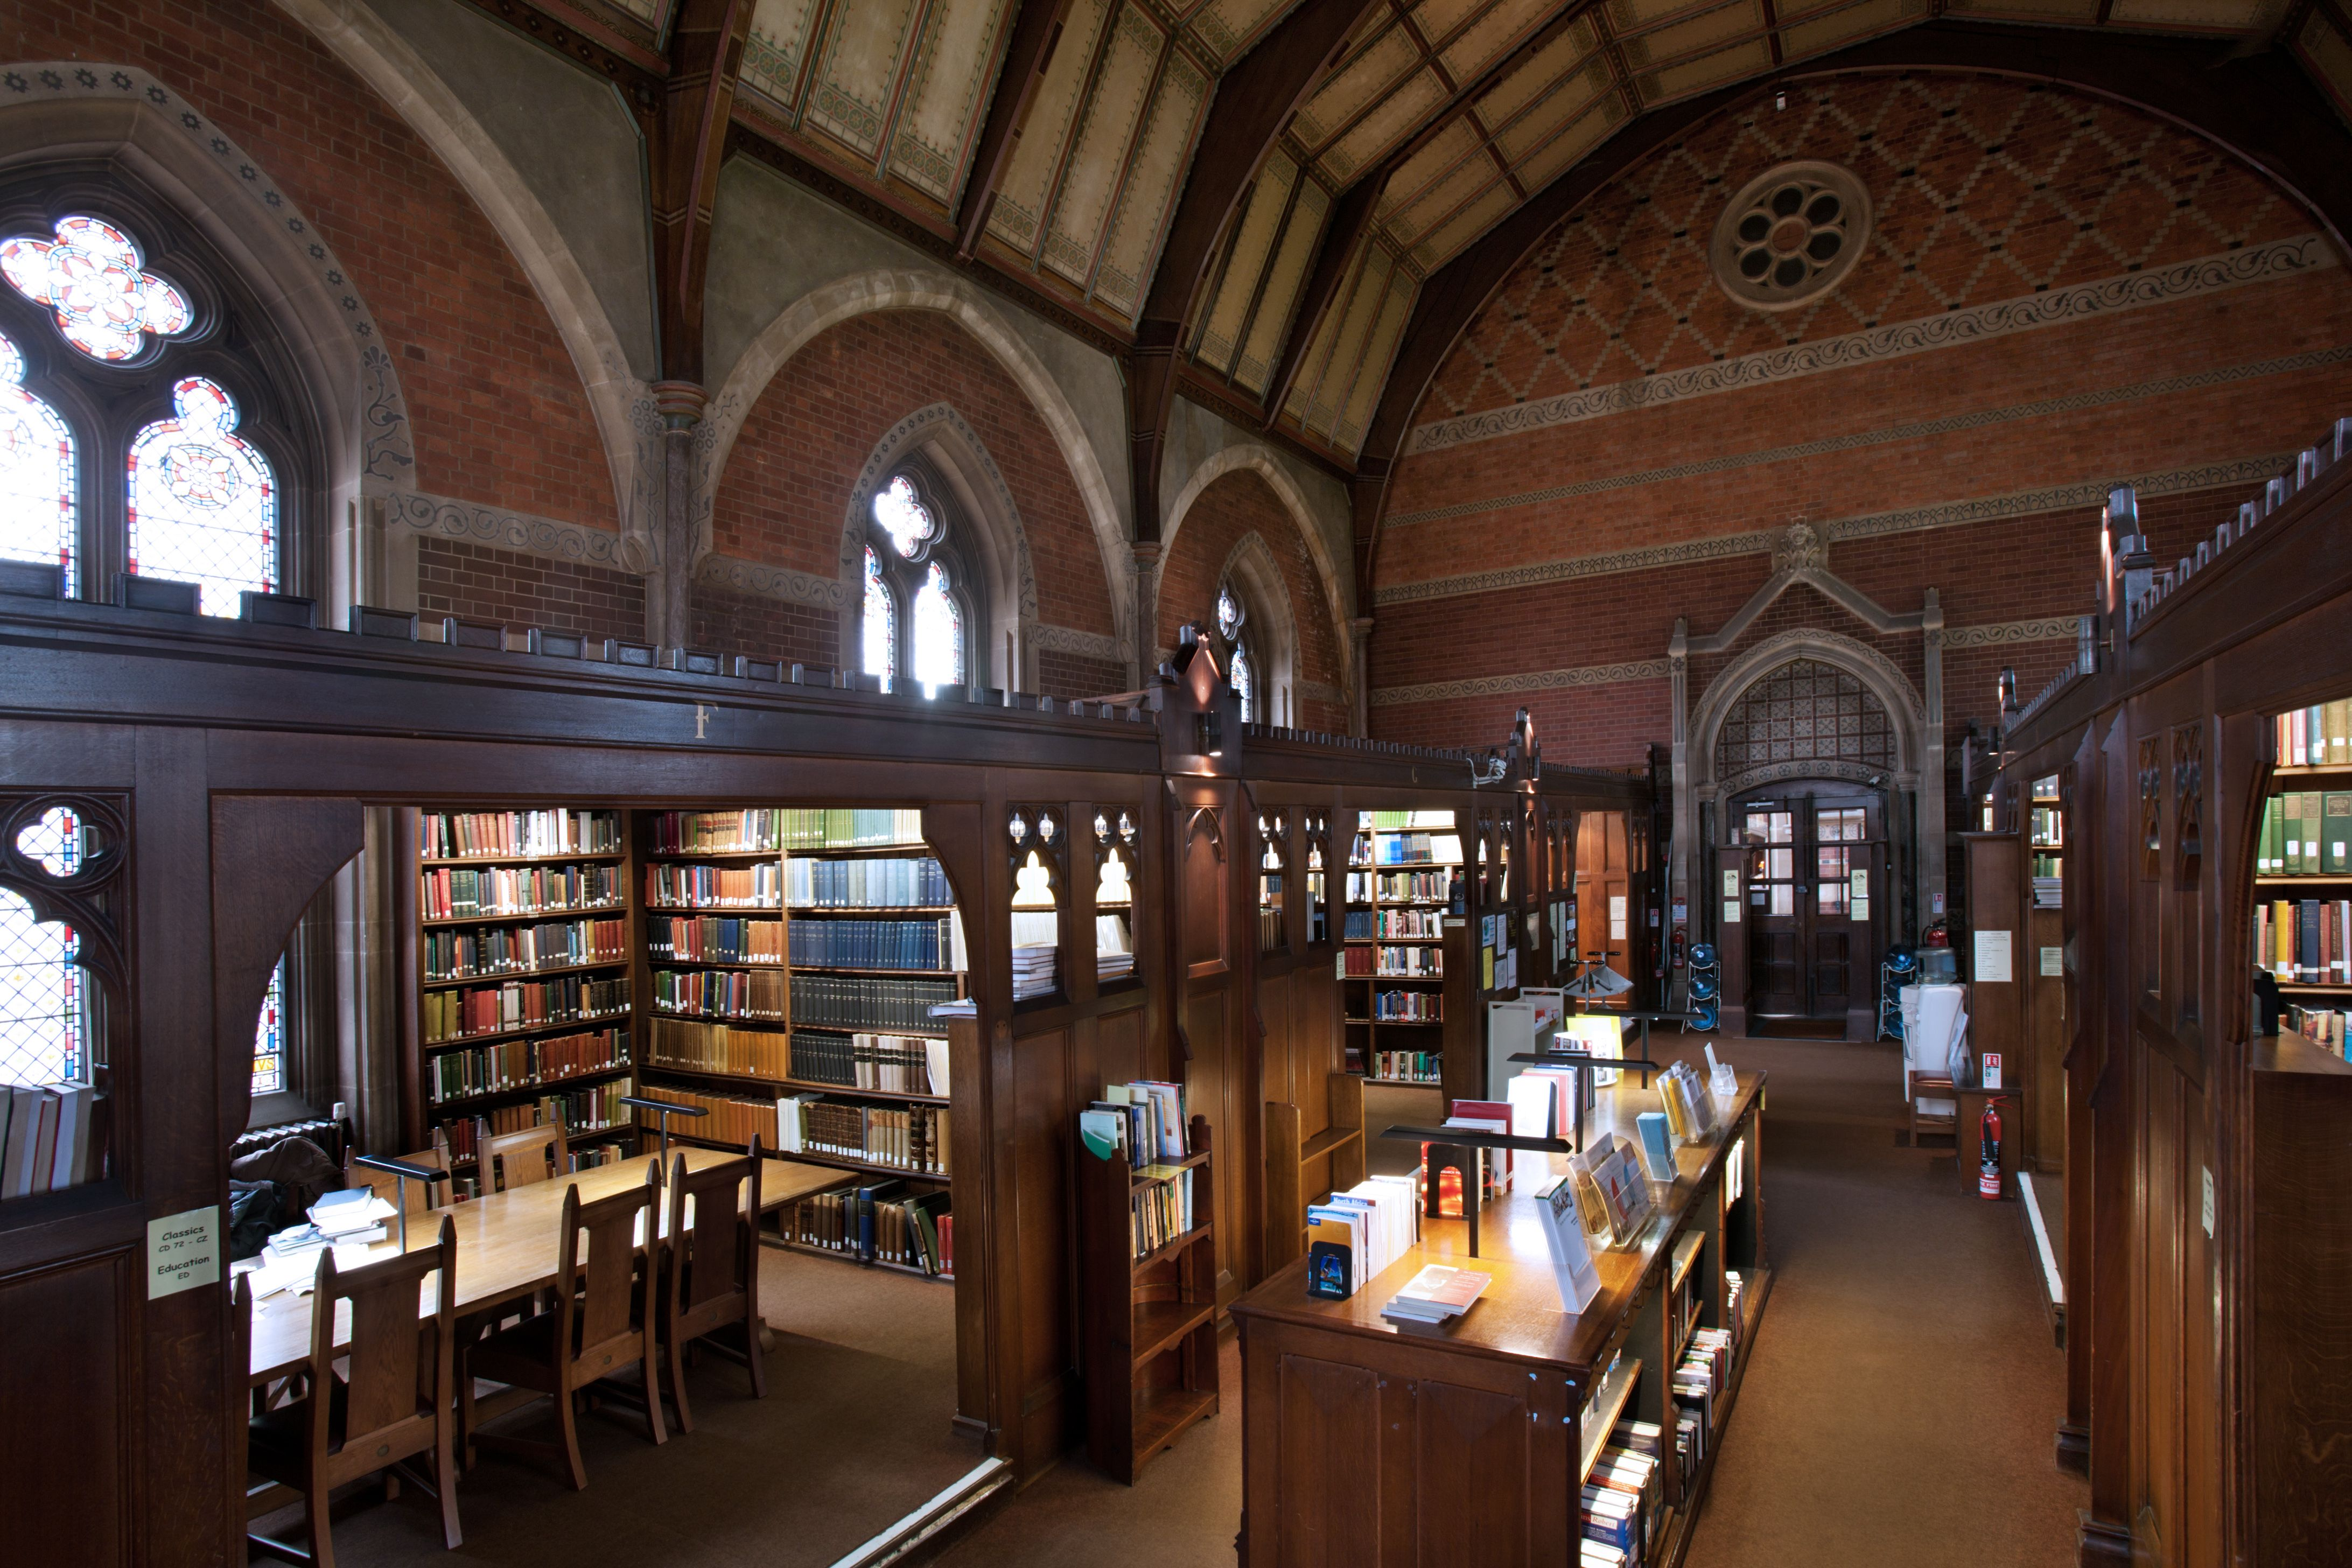 The Library at Keble College Oxford Keble College